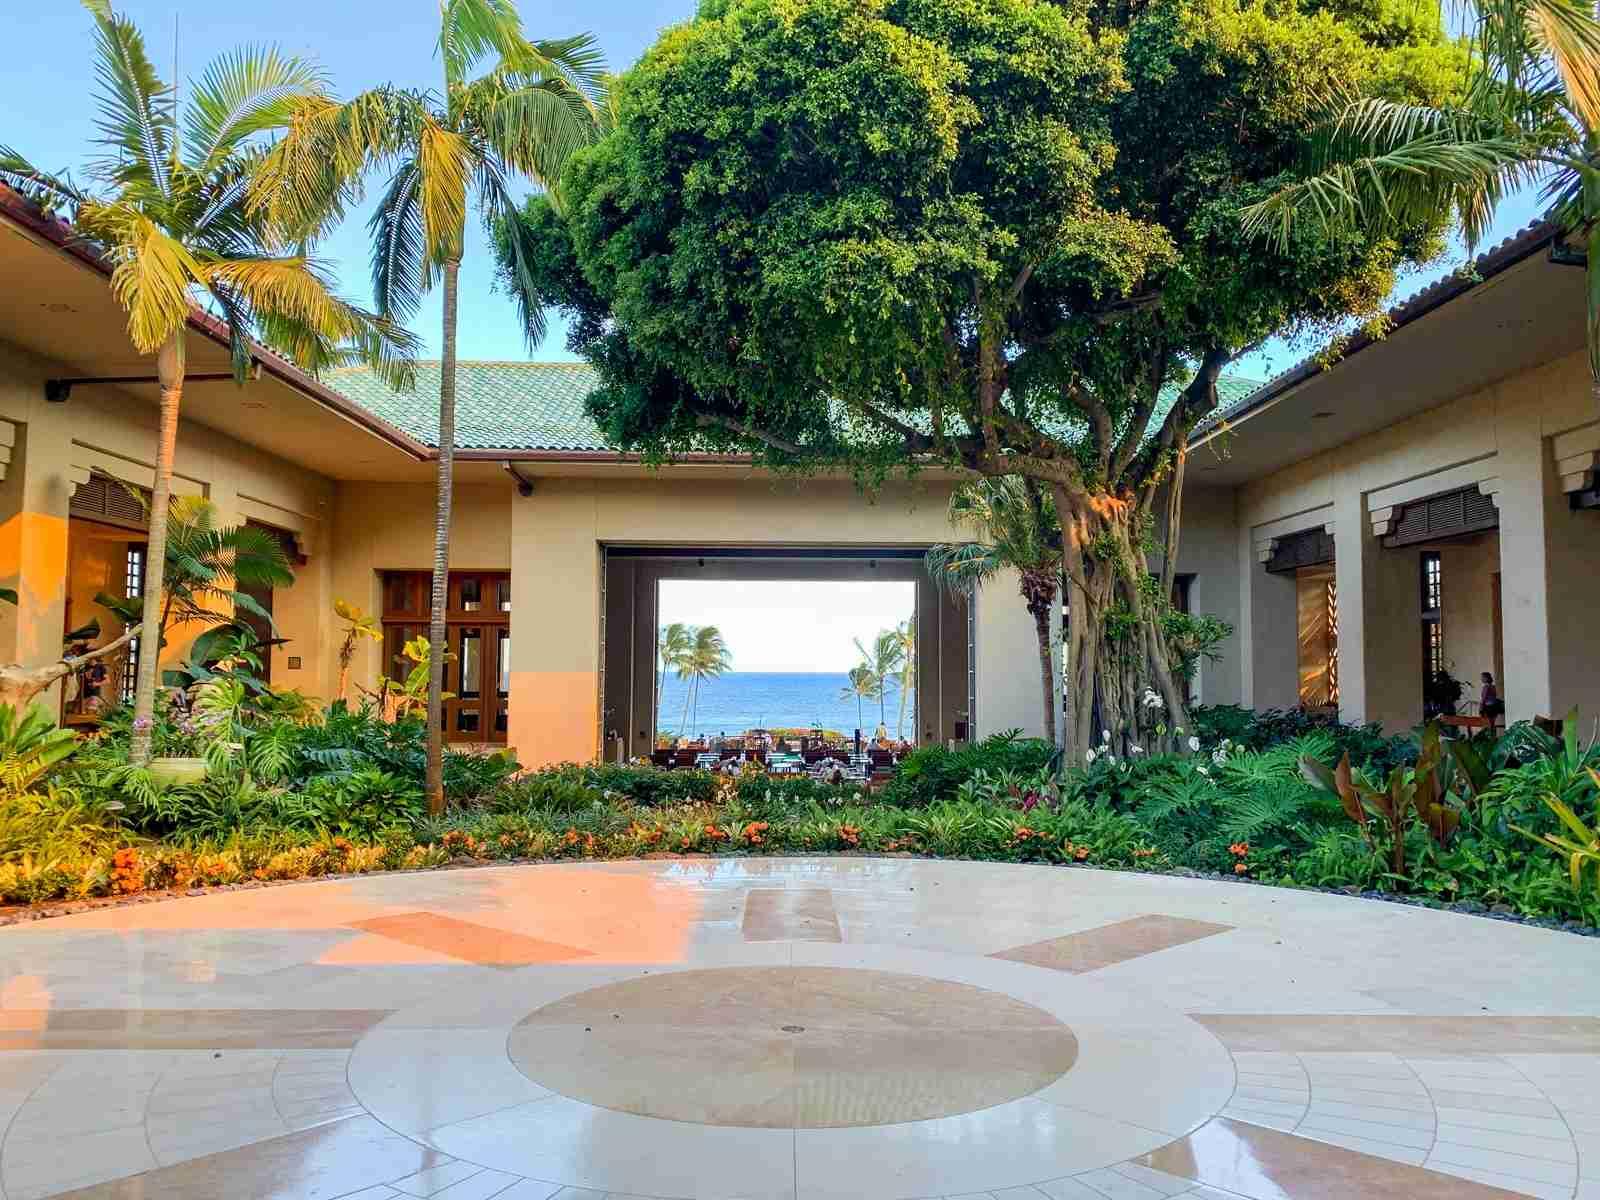 Entrance to the Grand Hyatt Kauai (Photo by Summer Hull / The Points Guy)